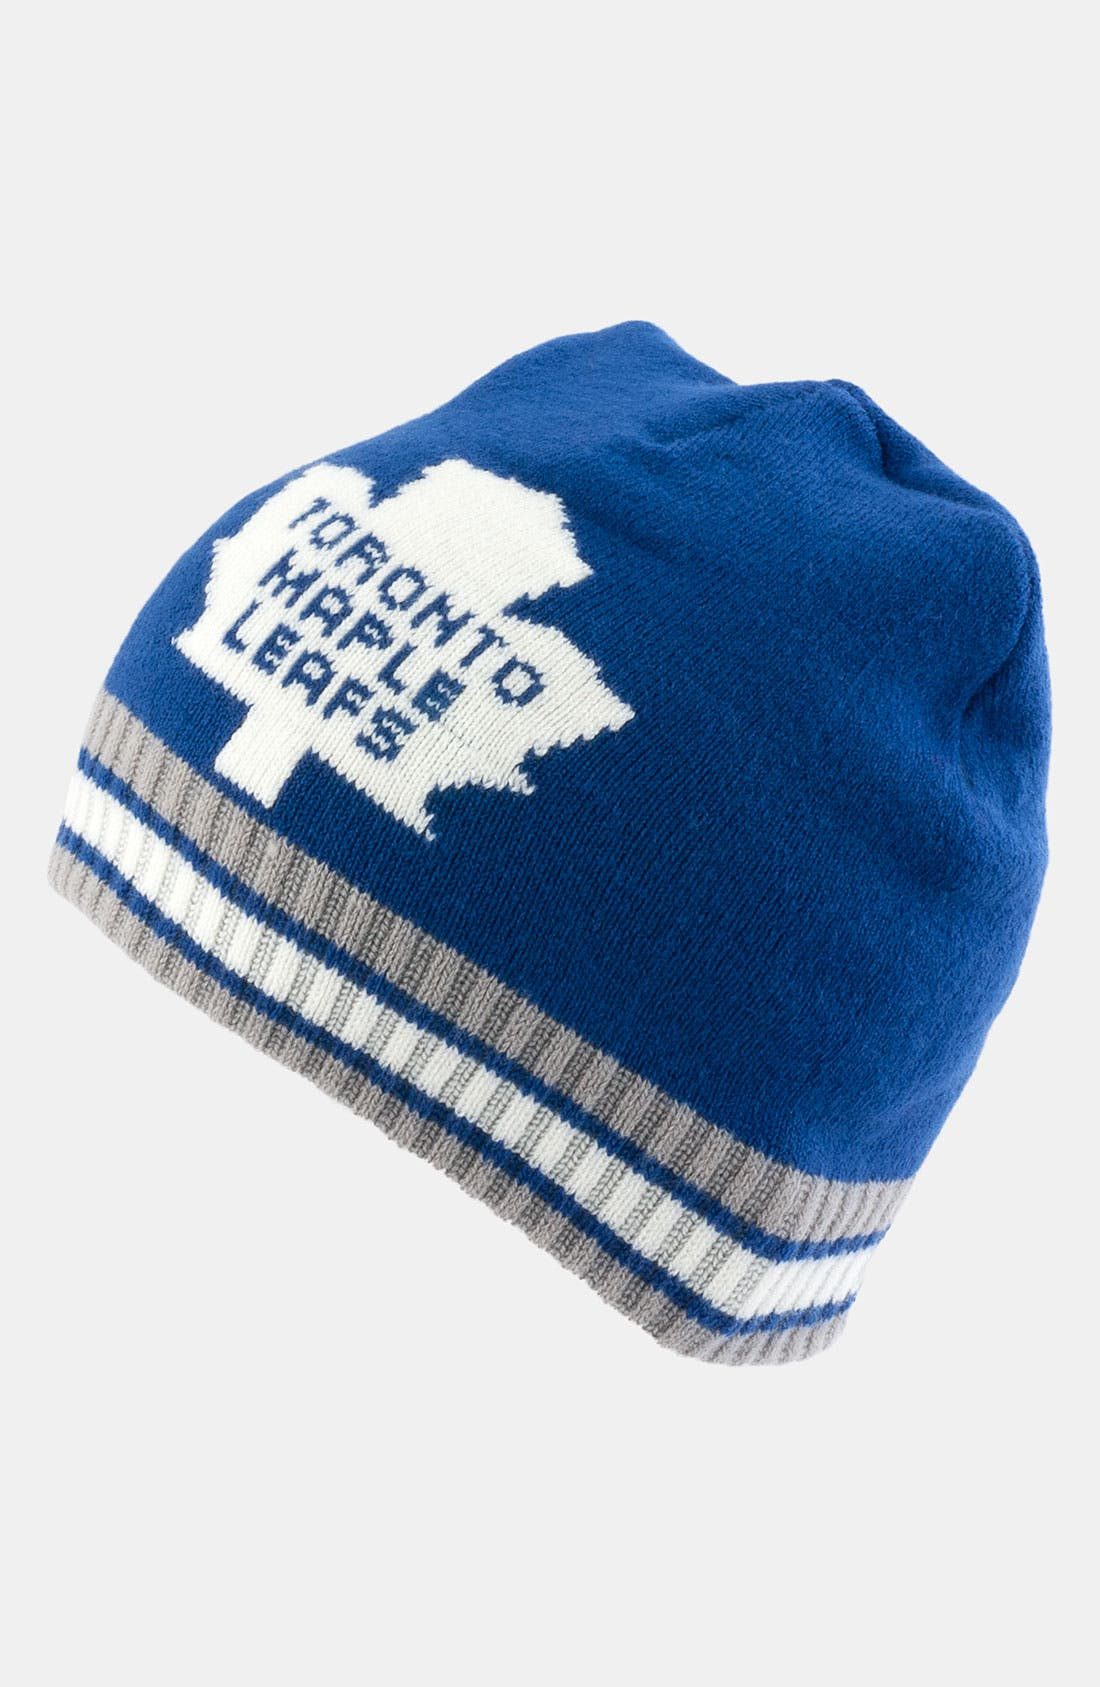 Main Image - American Needle 'Toronto Maple Leafs - Ring Wing' Knit Hat